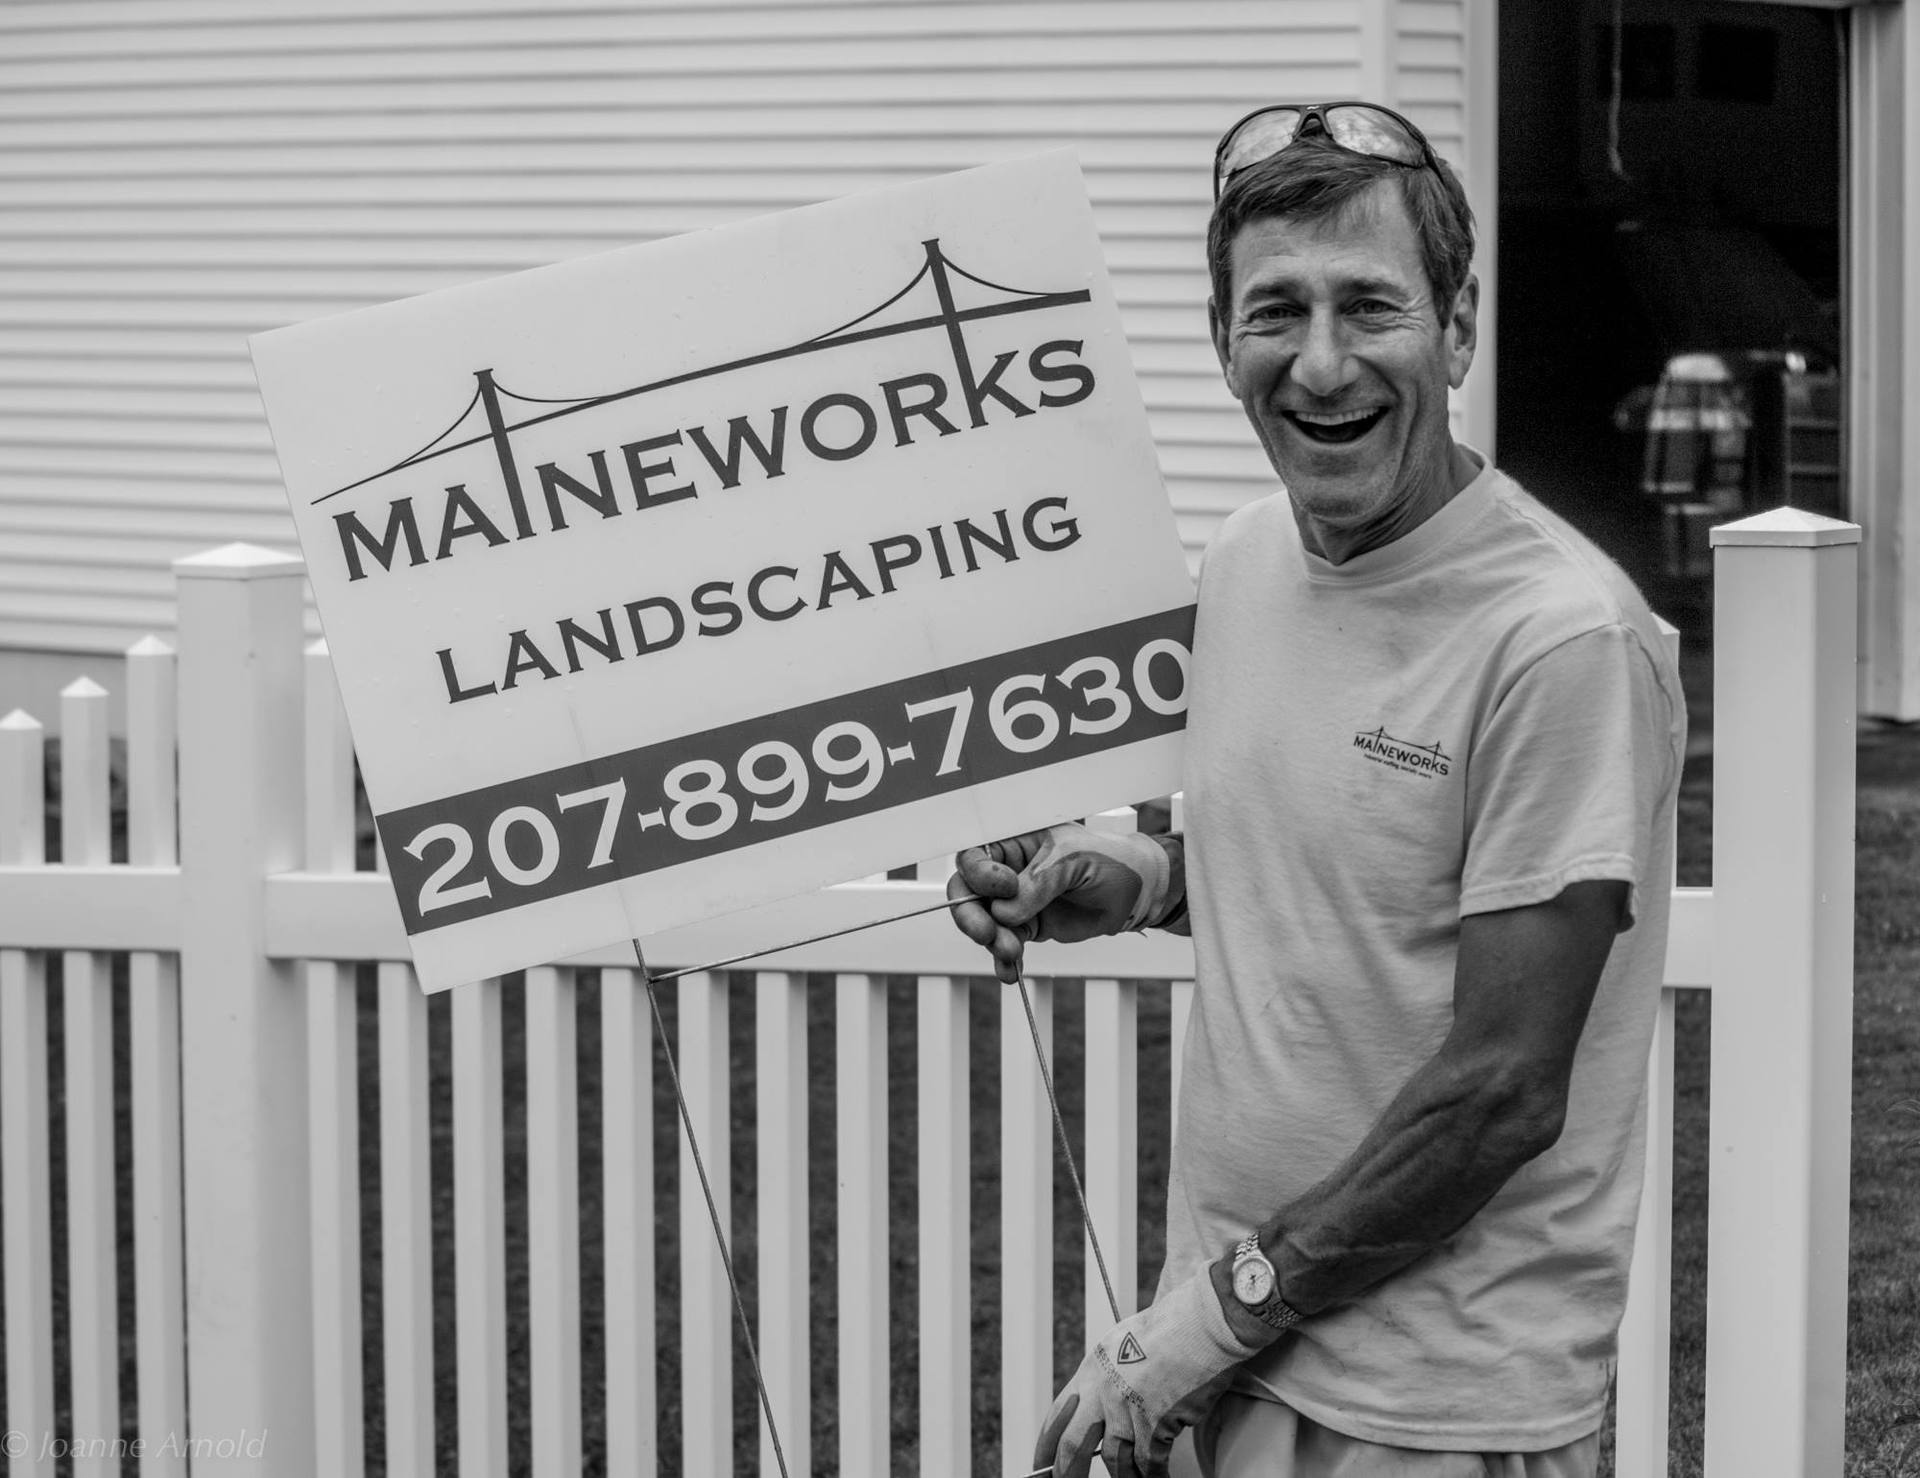 MaineWorks landscaping employee holding sign